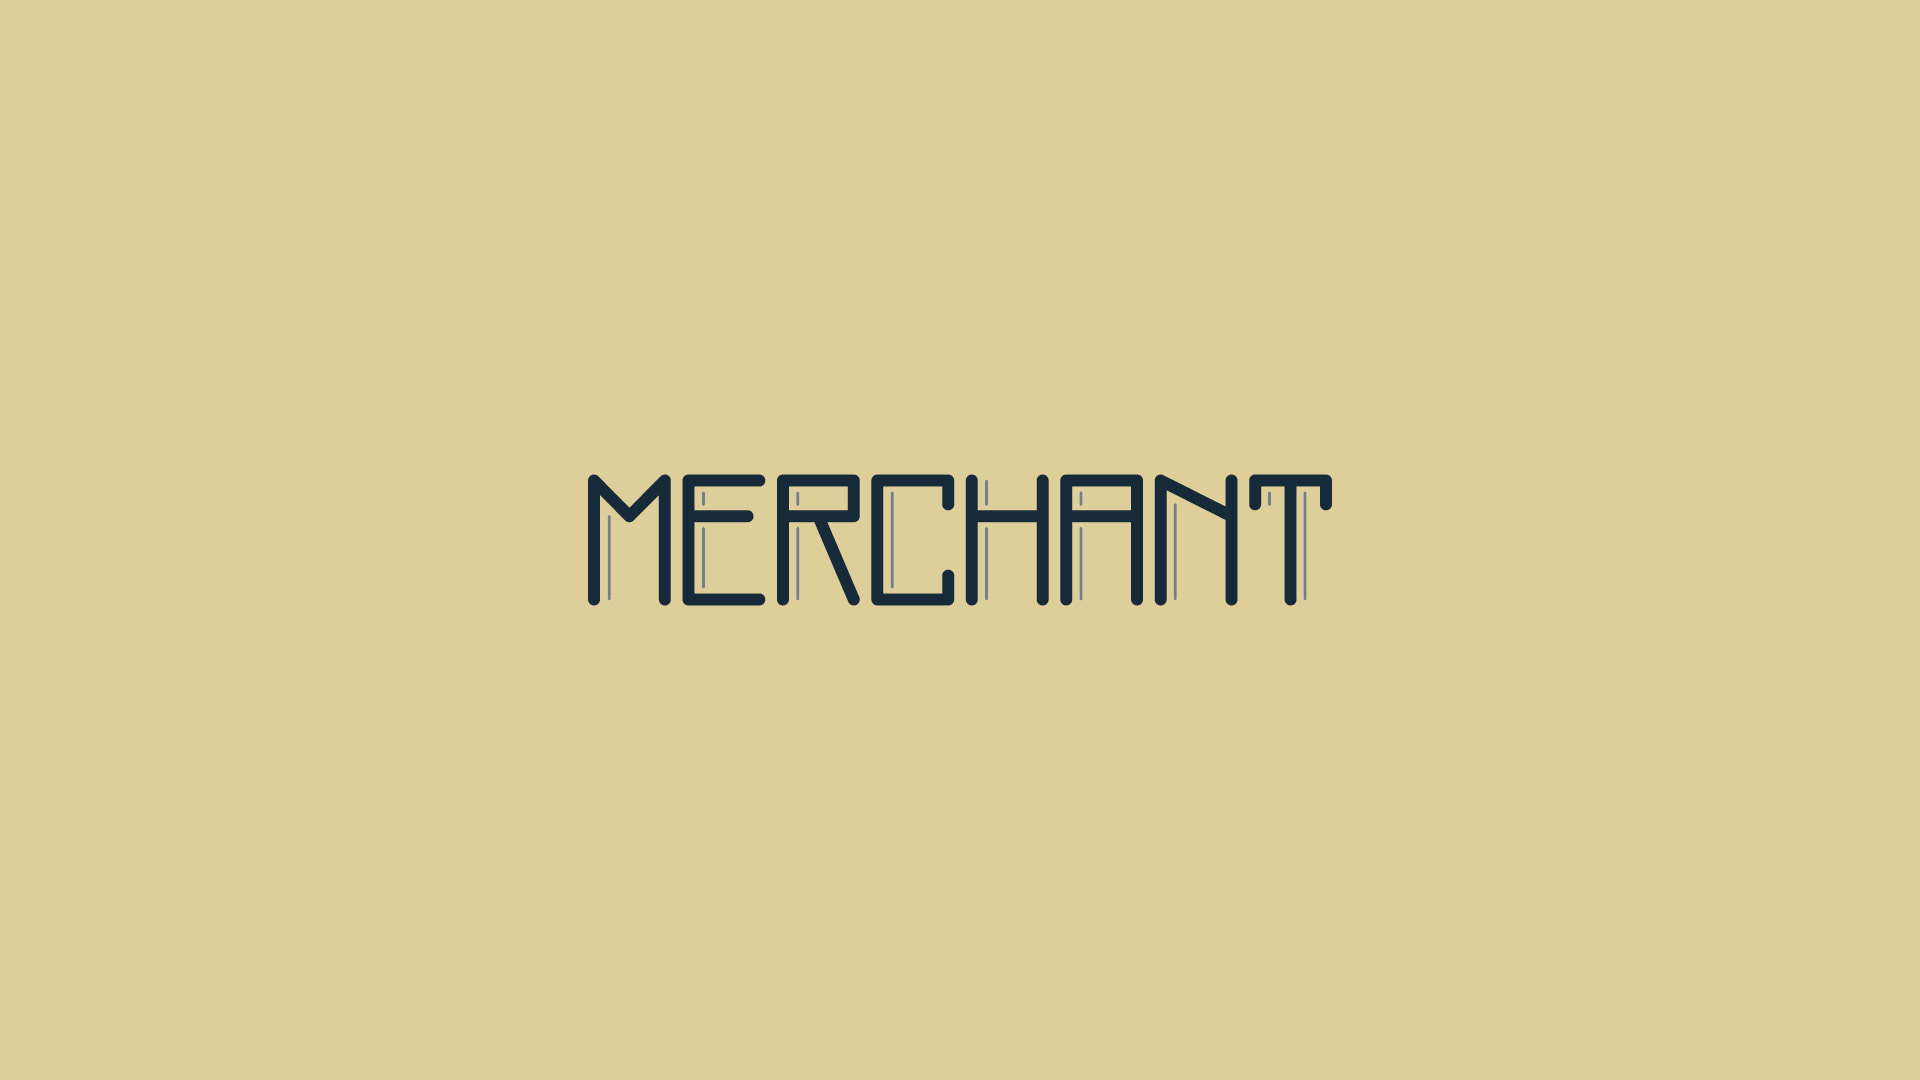 Merchant-Project-Image-1